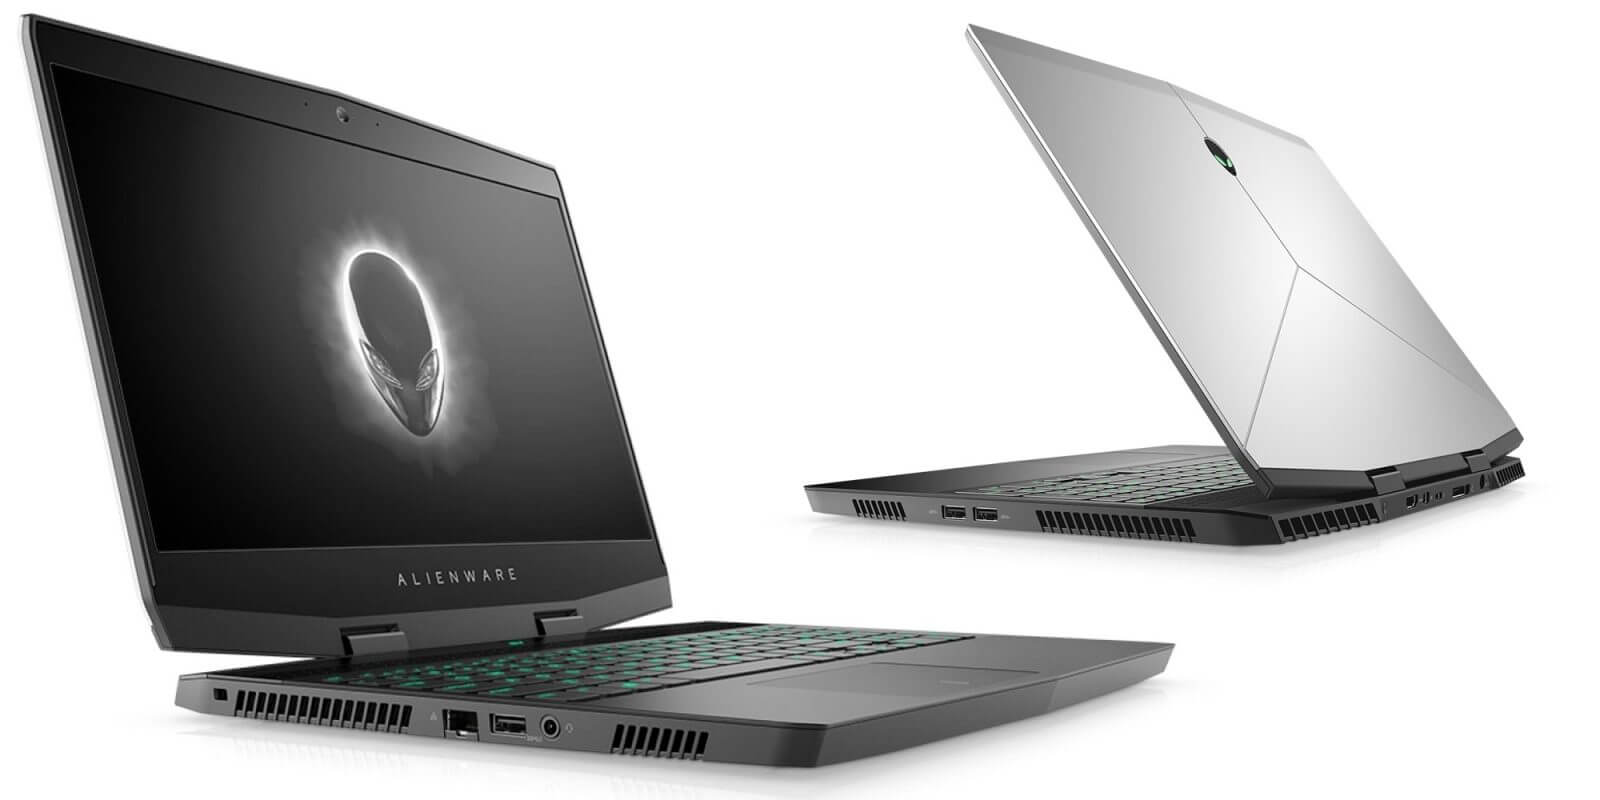 Alienware m15 featured